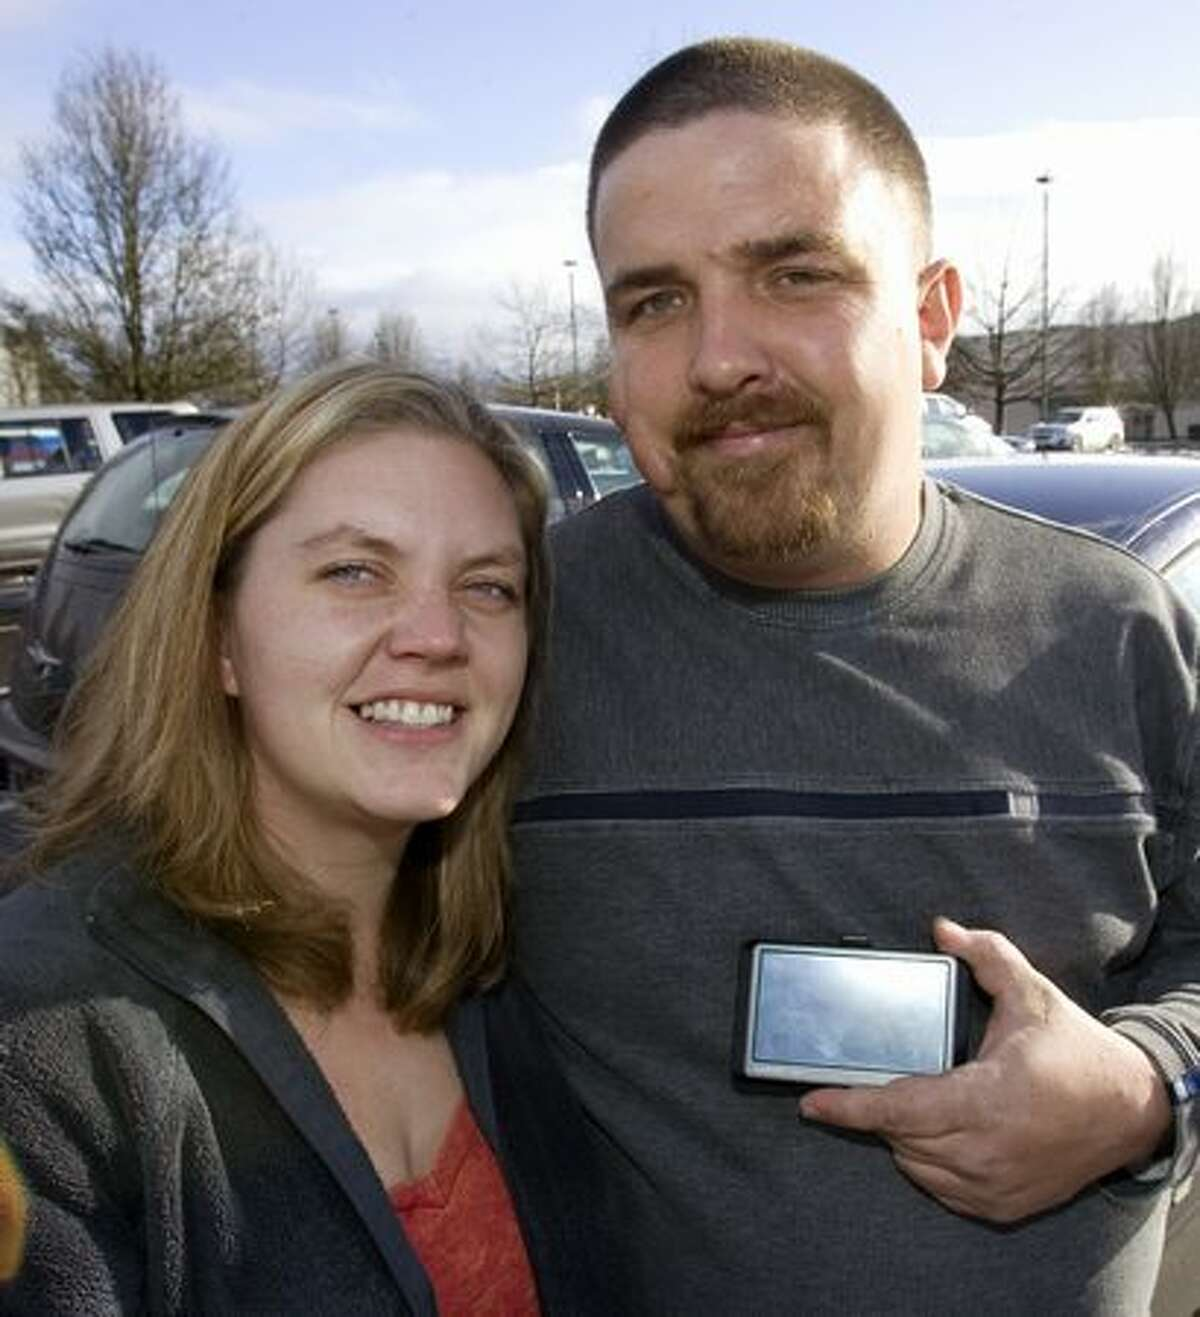 Jeramie Griffin, right, holds his GPS unit while posing for a photo with girlfriend Megan Garrison in Wilsonville, Ore., on Dec. 30, 2009. The couple and their toddler got stuck on a backcountry road for 12 hours after following GPS instructions and became so distraught that they recorded a final goodbye on their video camera. GPS is no substitute for common sense, say law enforcement officials who have rescued three parties of holiday travelers in rural Oregon.(AP Photo/Don Ryan)